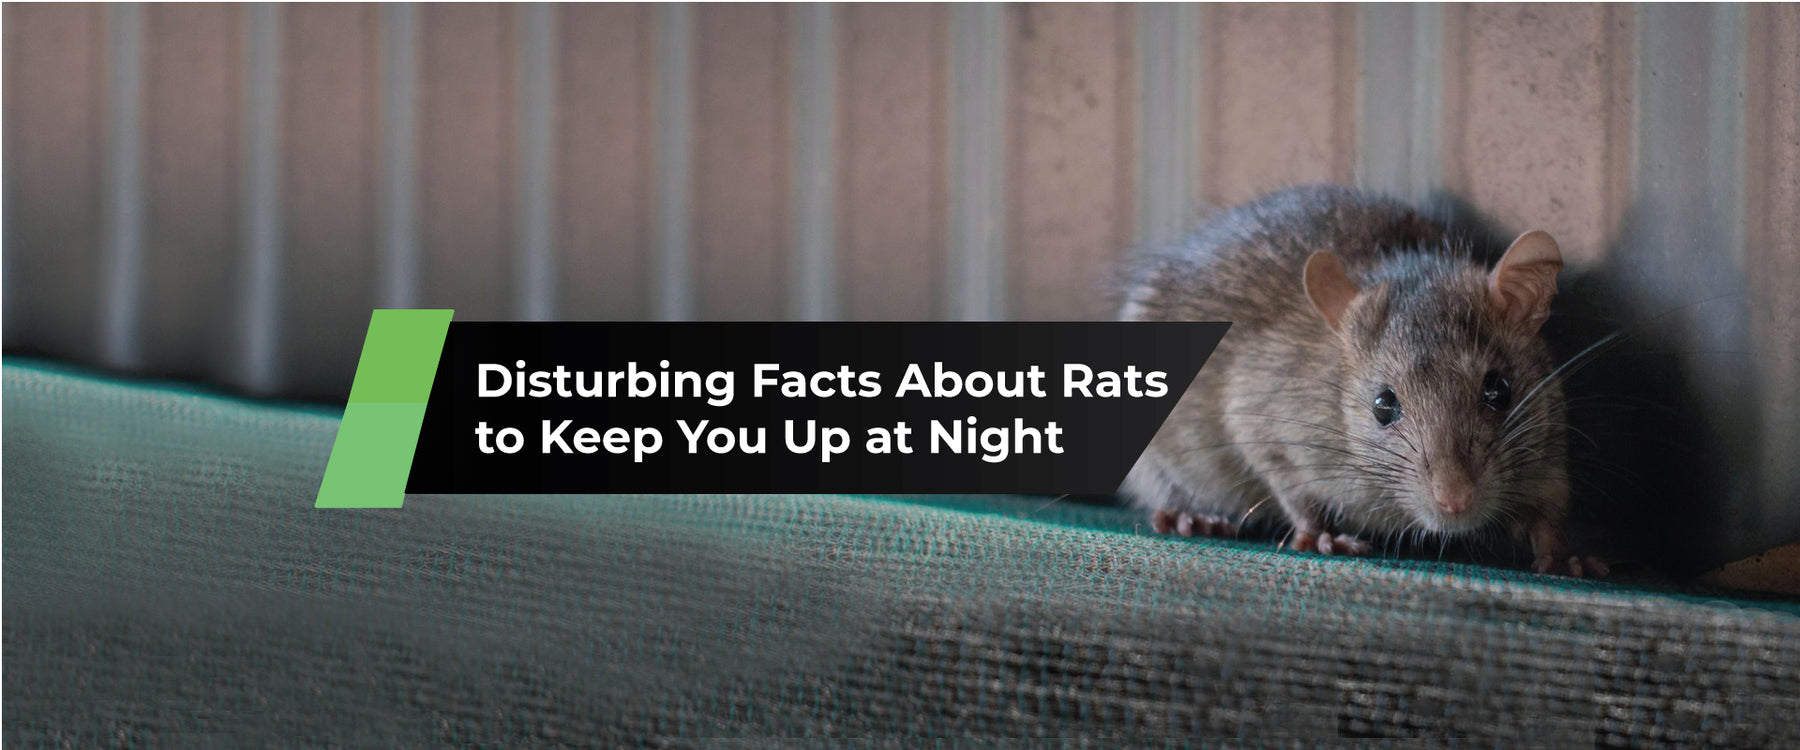 Disturbing Facts About Rats to Keep You Up at Night